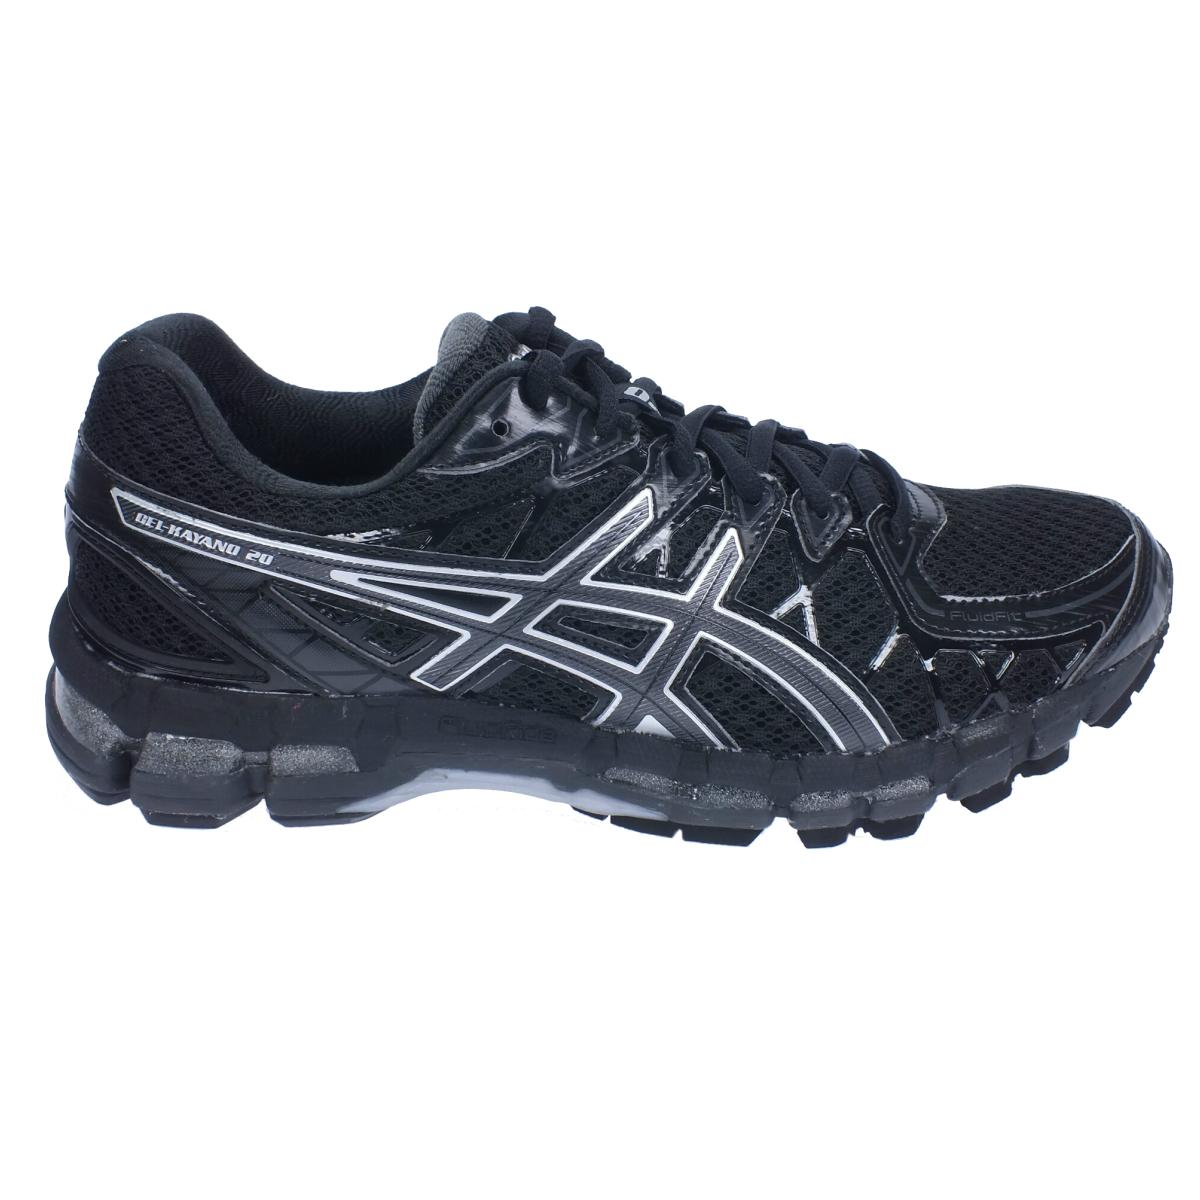 asics gel kayano 20 damen schuhe laufschuhe joggingschuhe. Black Bedroom Furniture Sets. Home Design Ideas